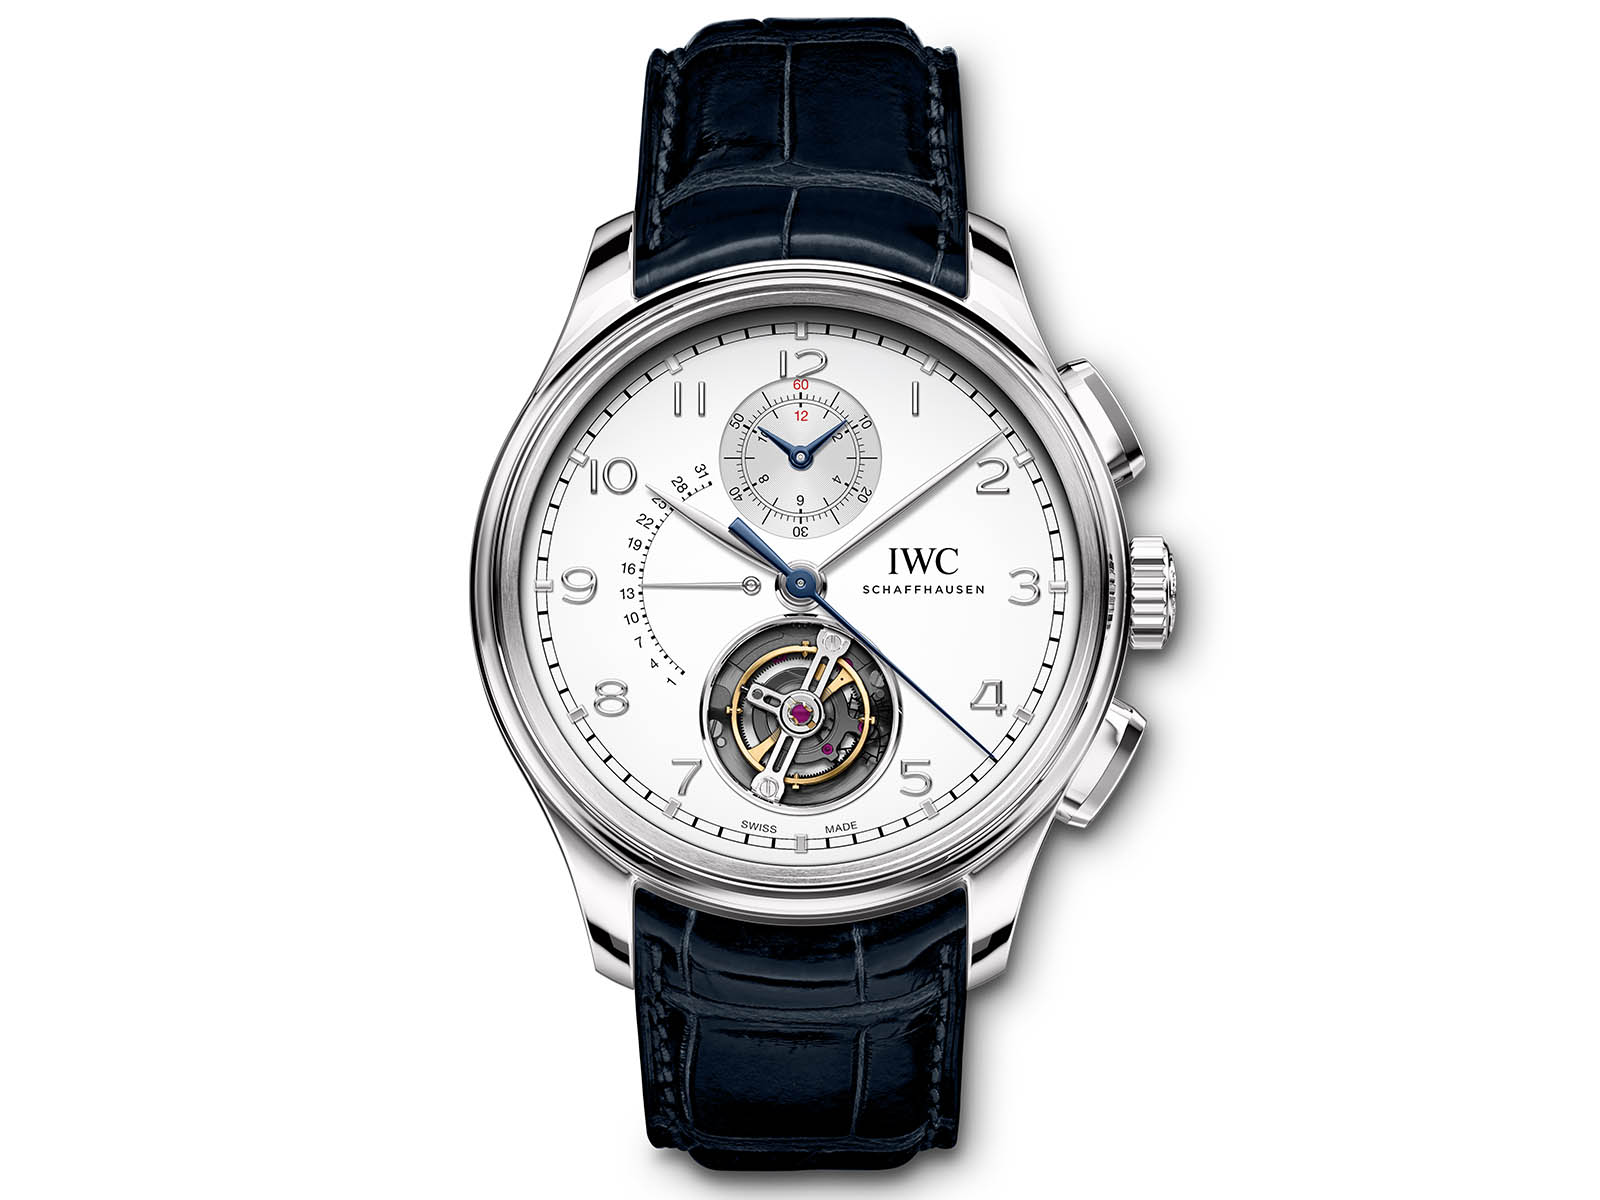 iw3940062-iwc-schaffhausen-portugieser-complications-watches-wonders-2020-1.jpg